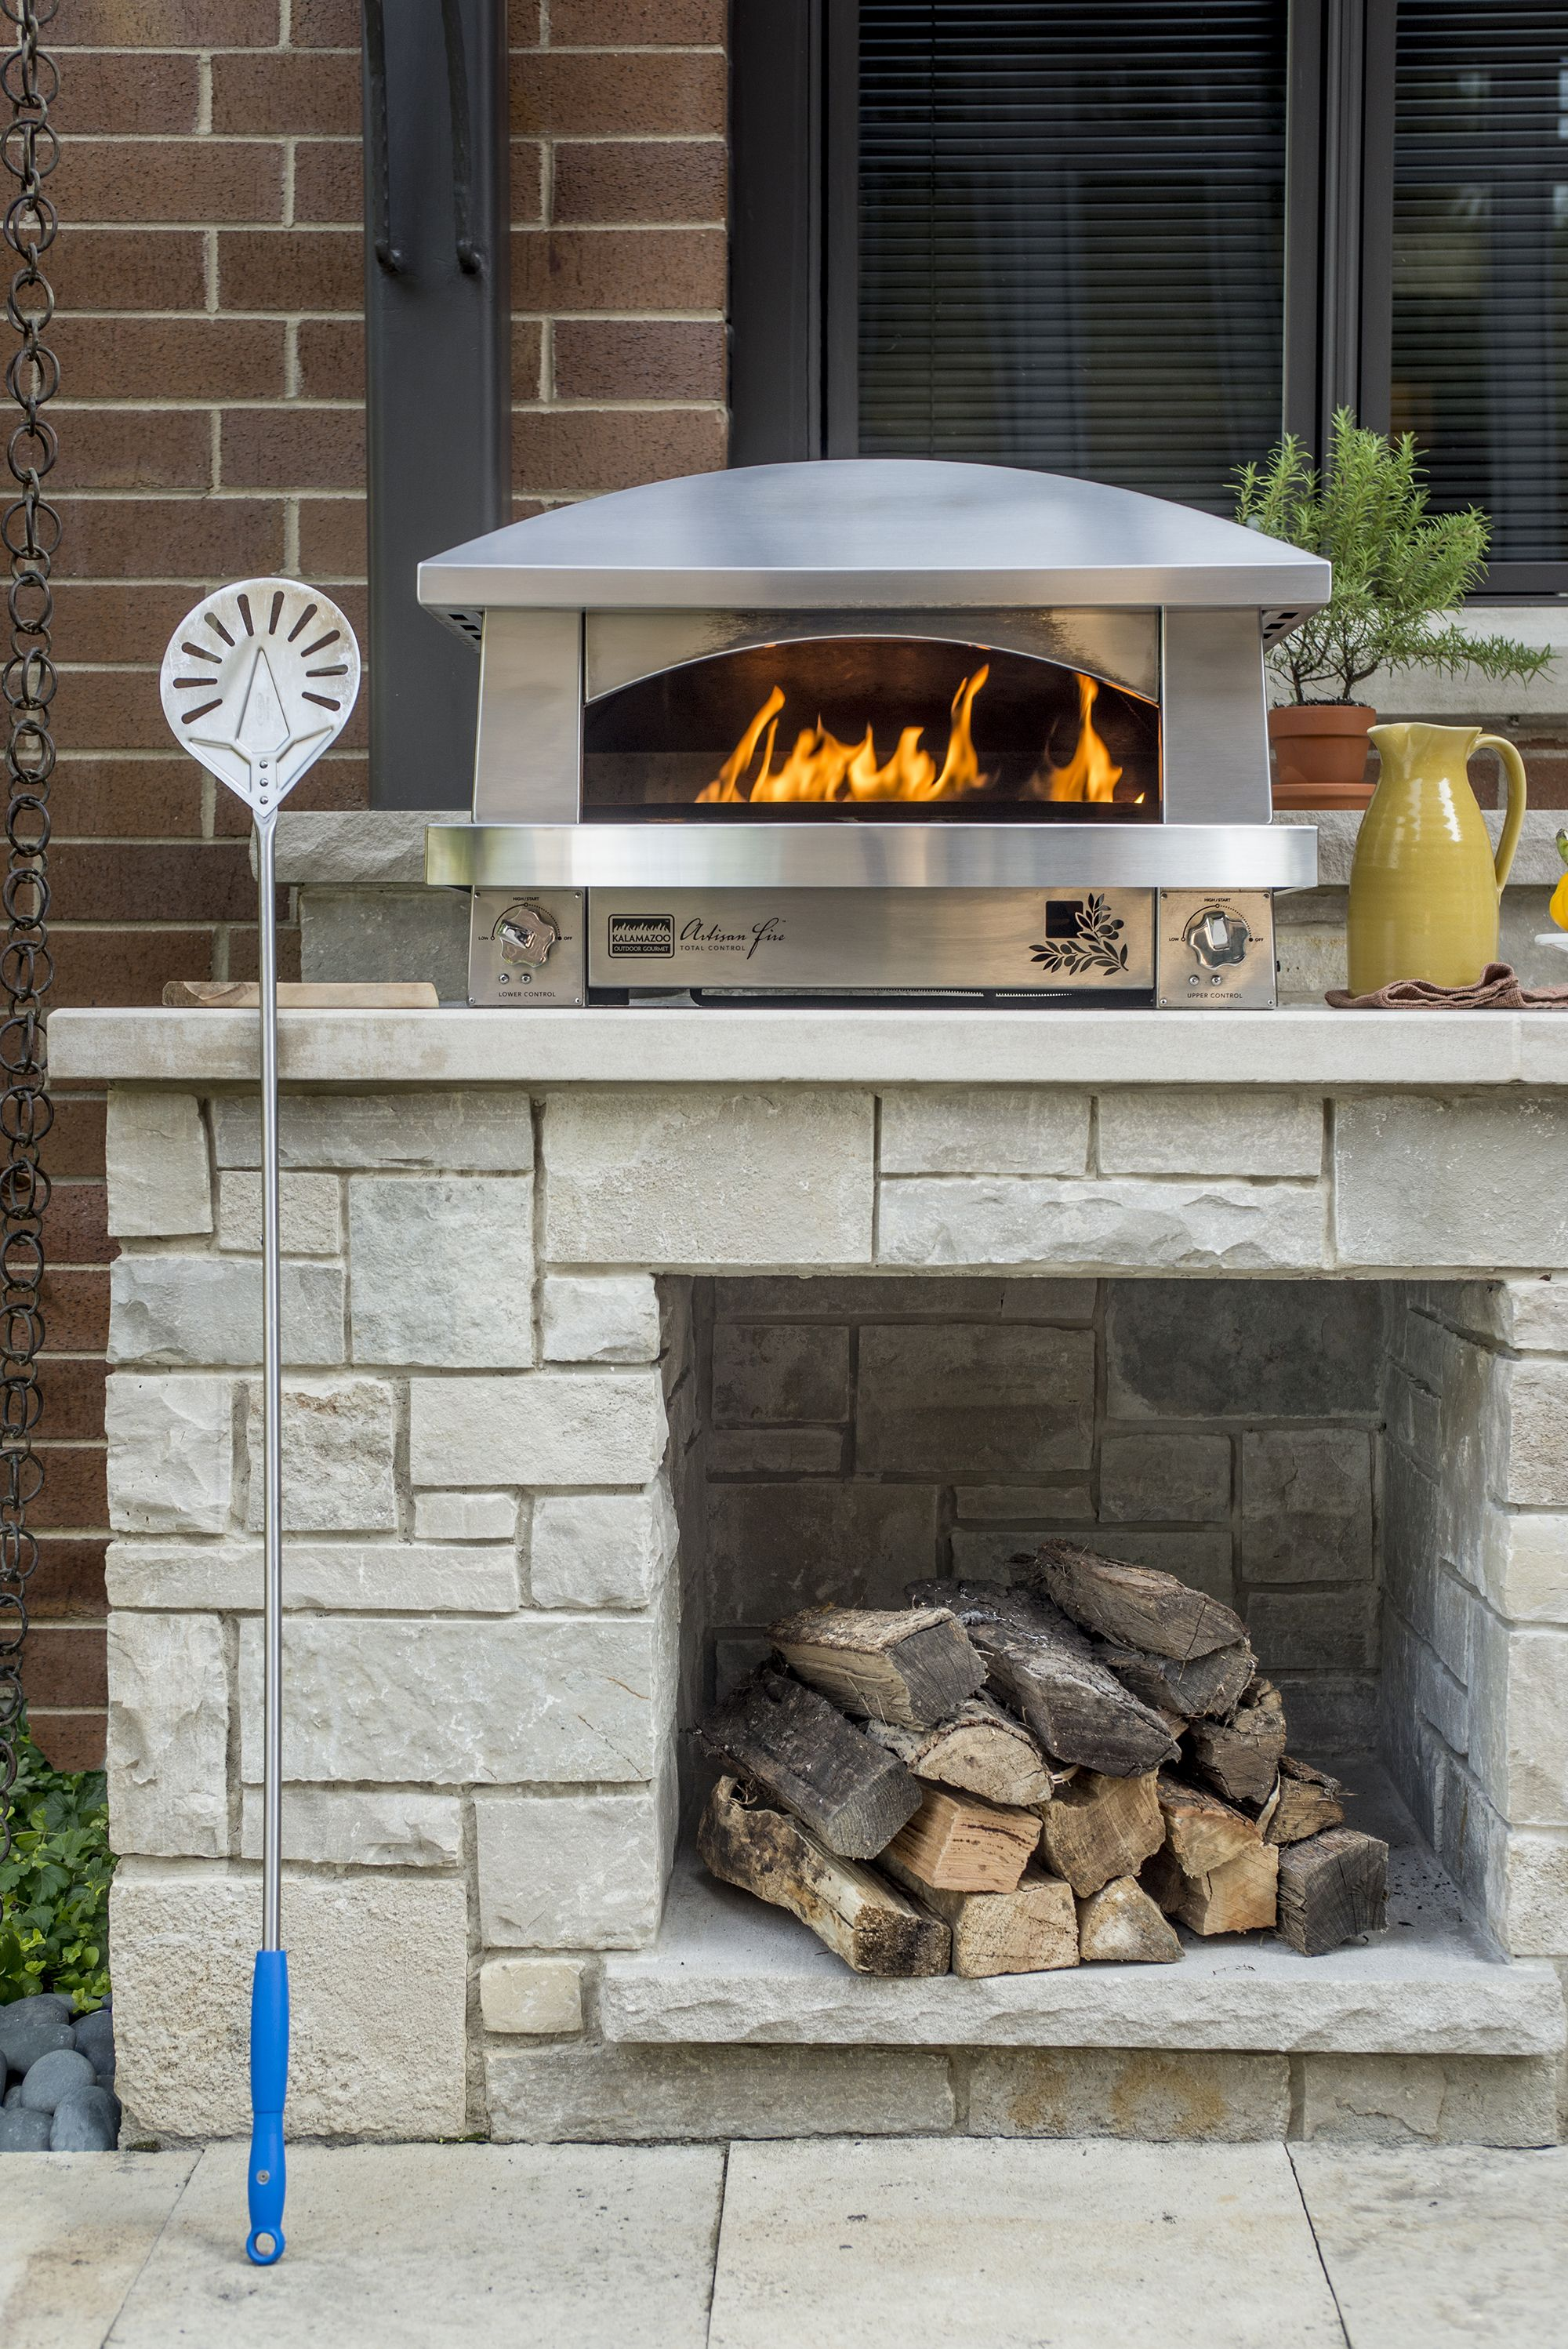 The Kalamazoo Artisan Fire Pizza Oven Kitchen Gallery Outdoor